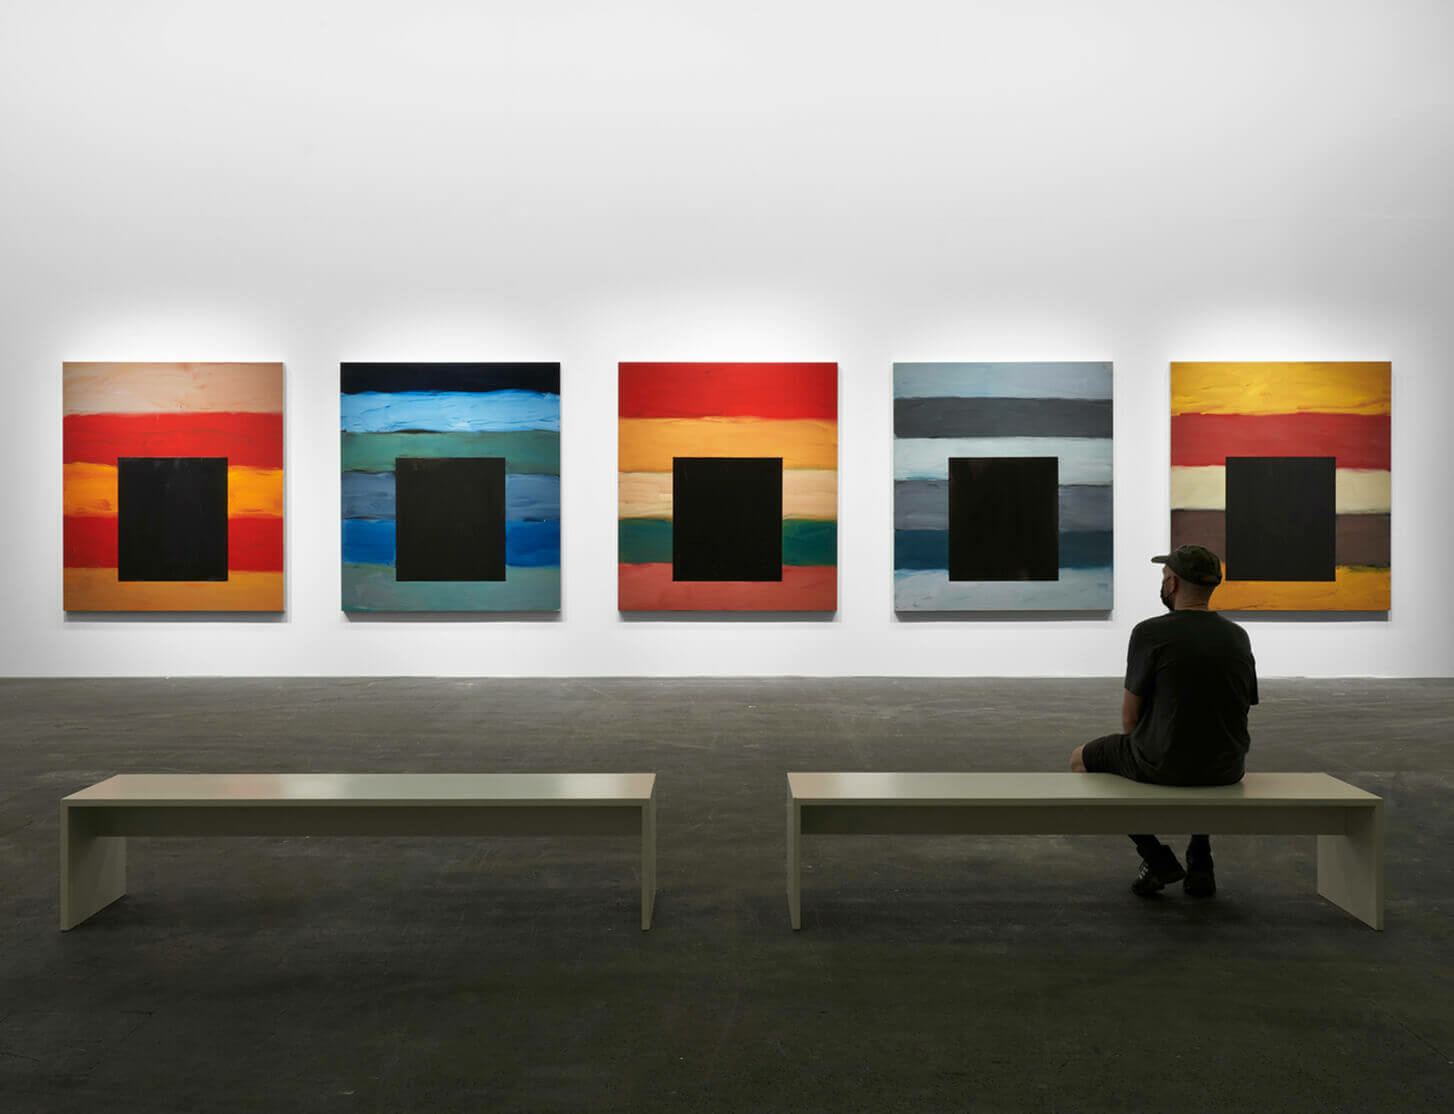 Sean Scully's 'Dark Windows' presented at Art Basel Unlimited